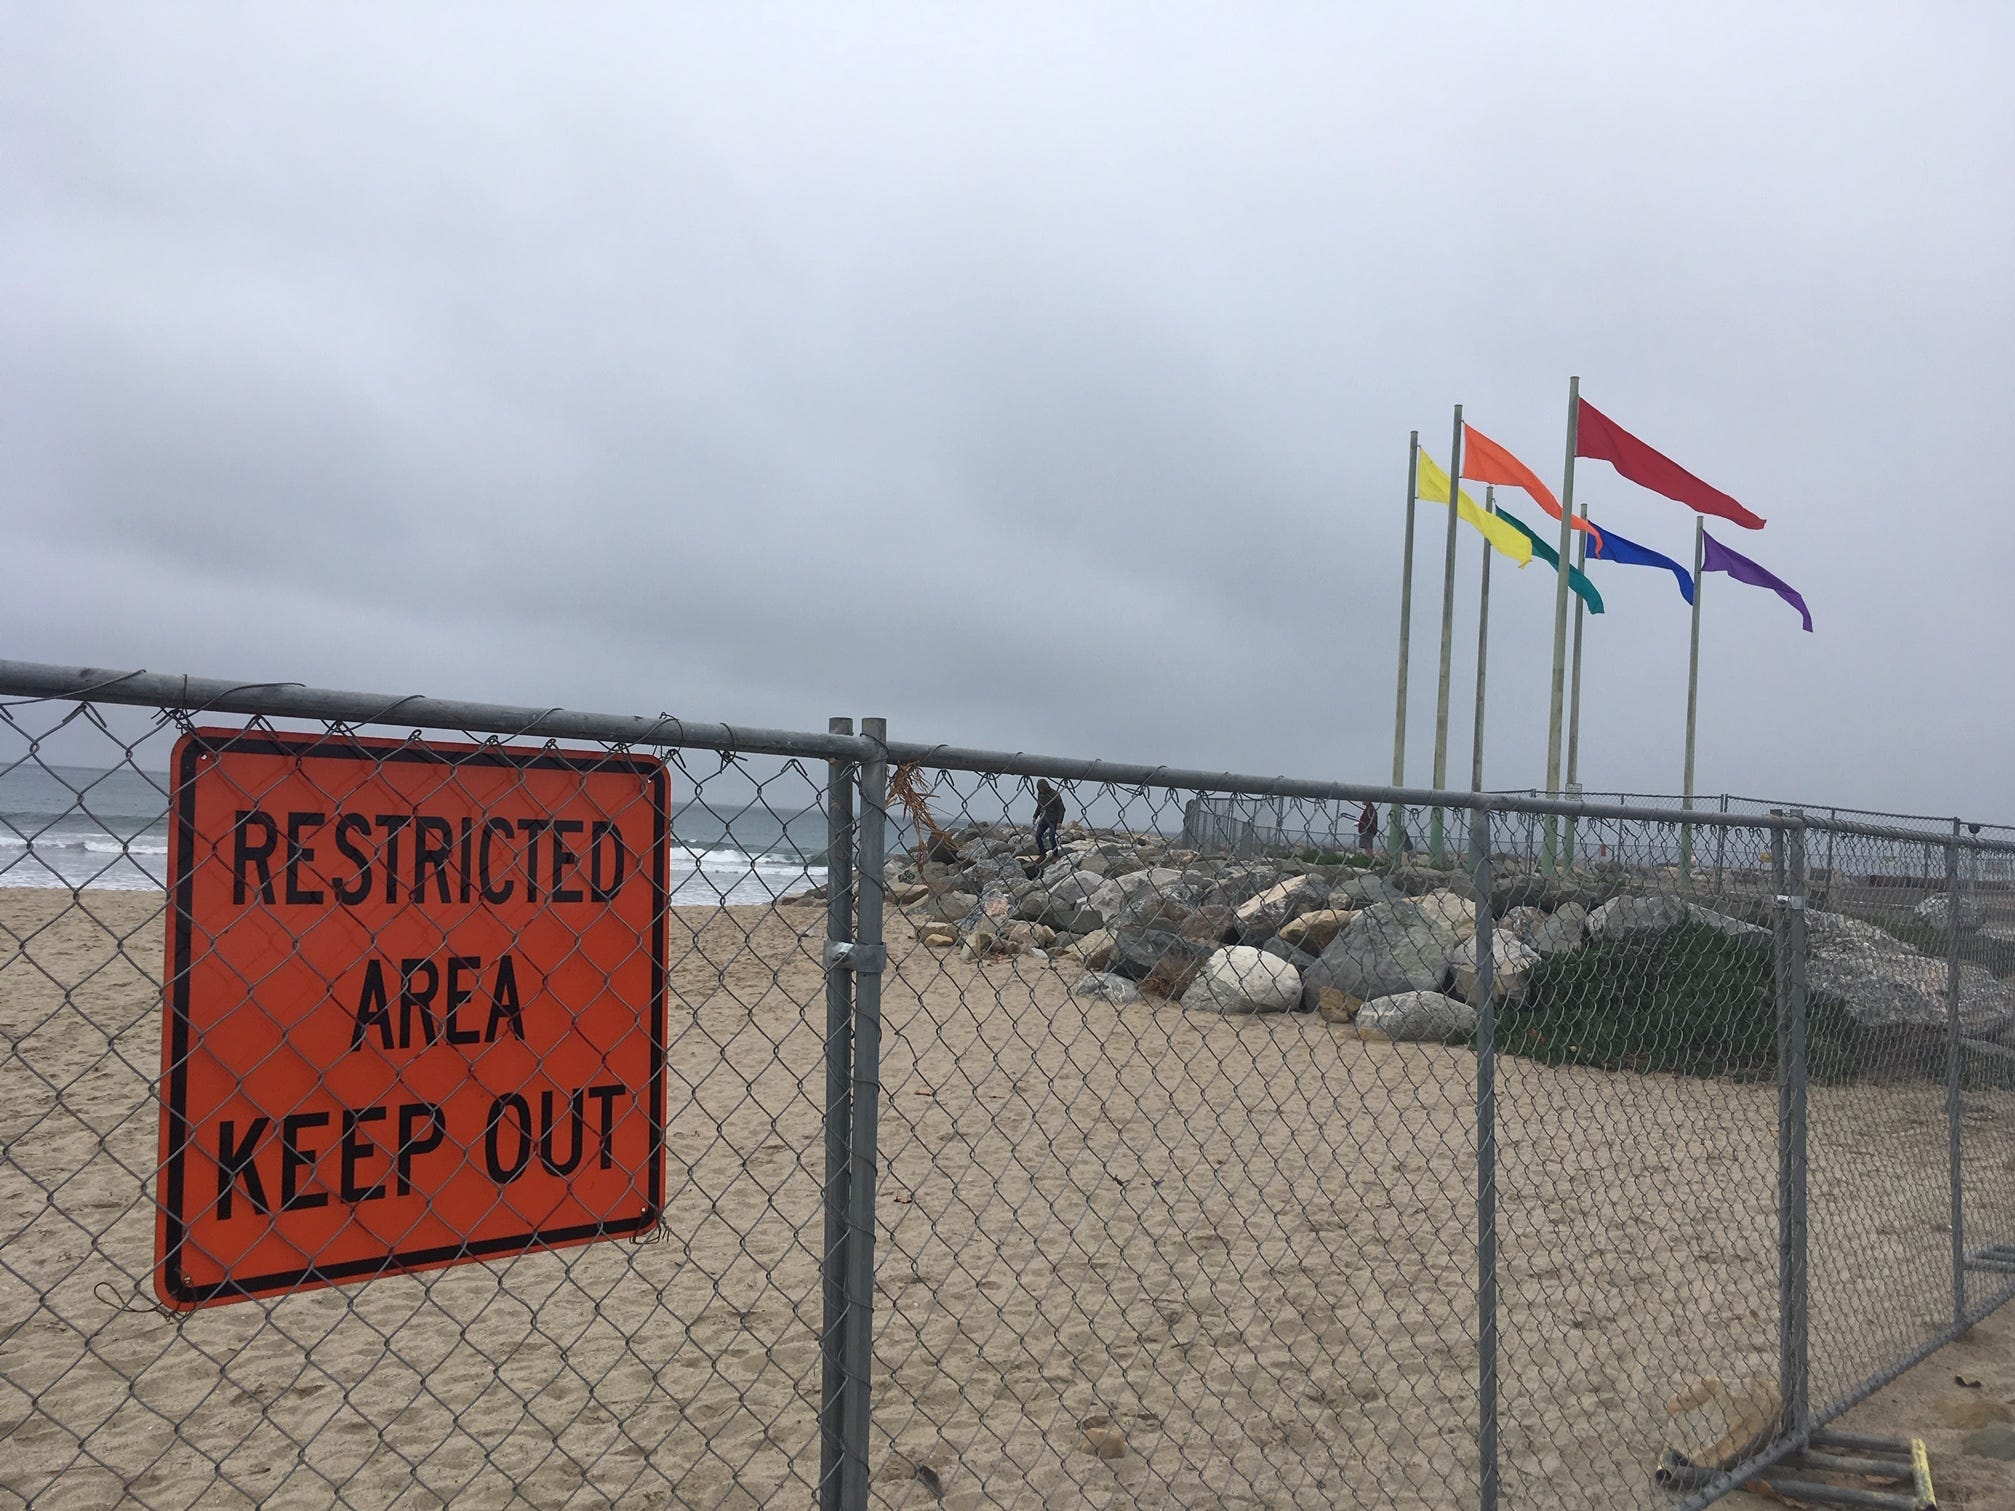 Port Hueneme's getting an infusion of sand thanks to an Army Corps of Engineers dredging operation.